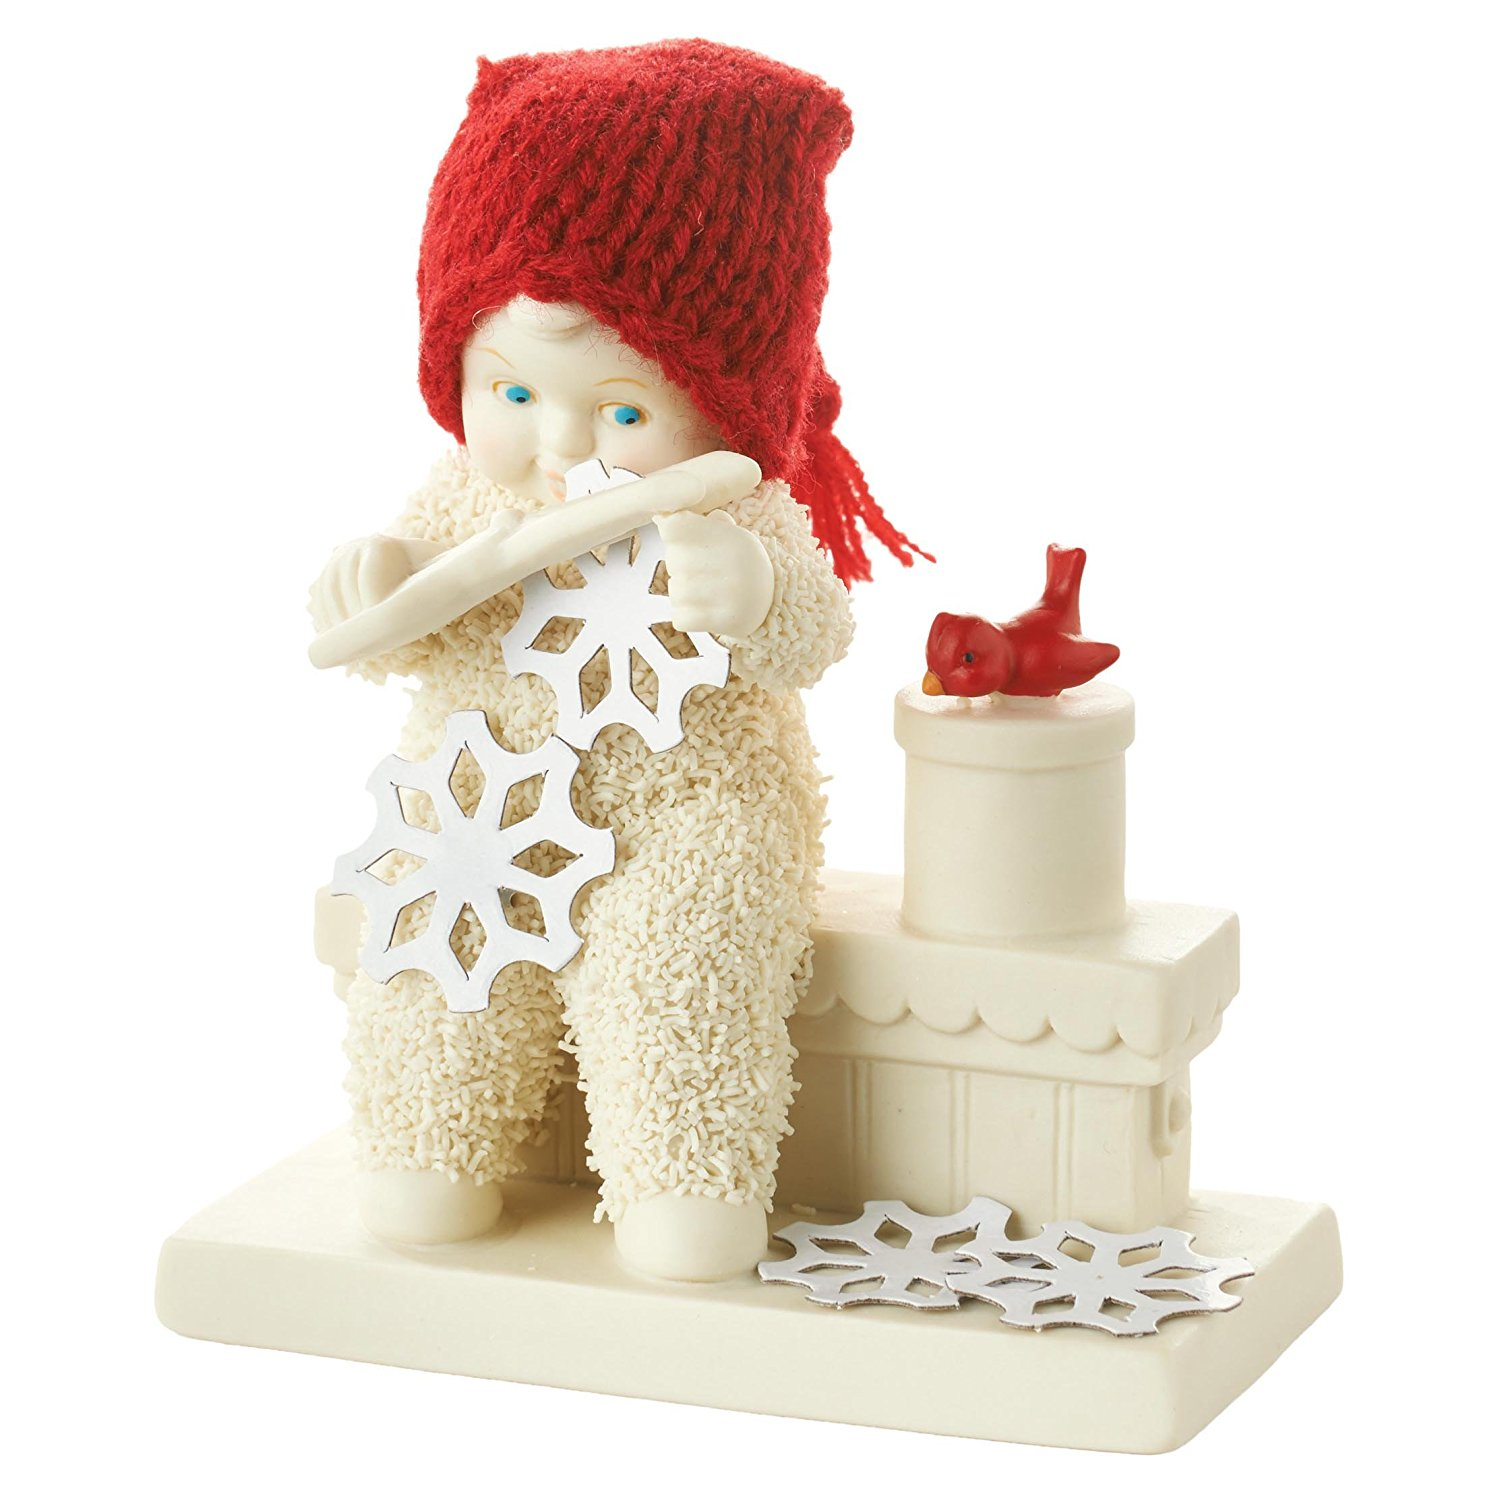 Department 56 4051932 Clasb Making Snow Figurine, A Dept 56 product By Department-56 Ship from US